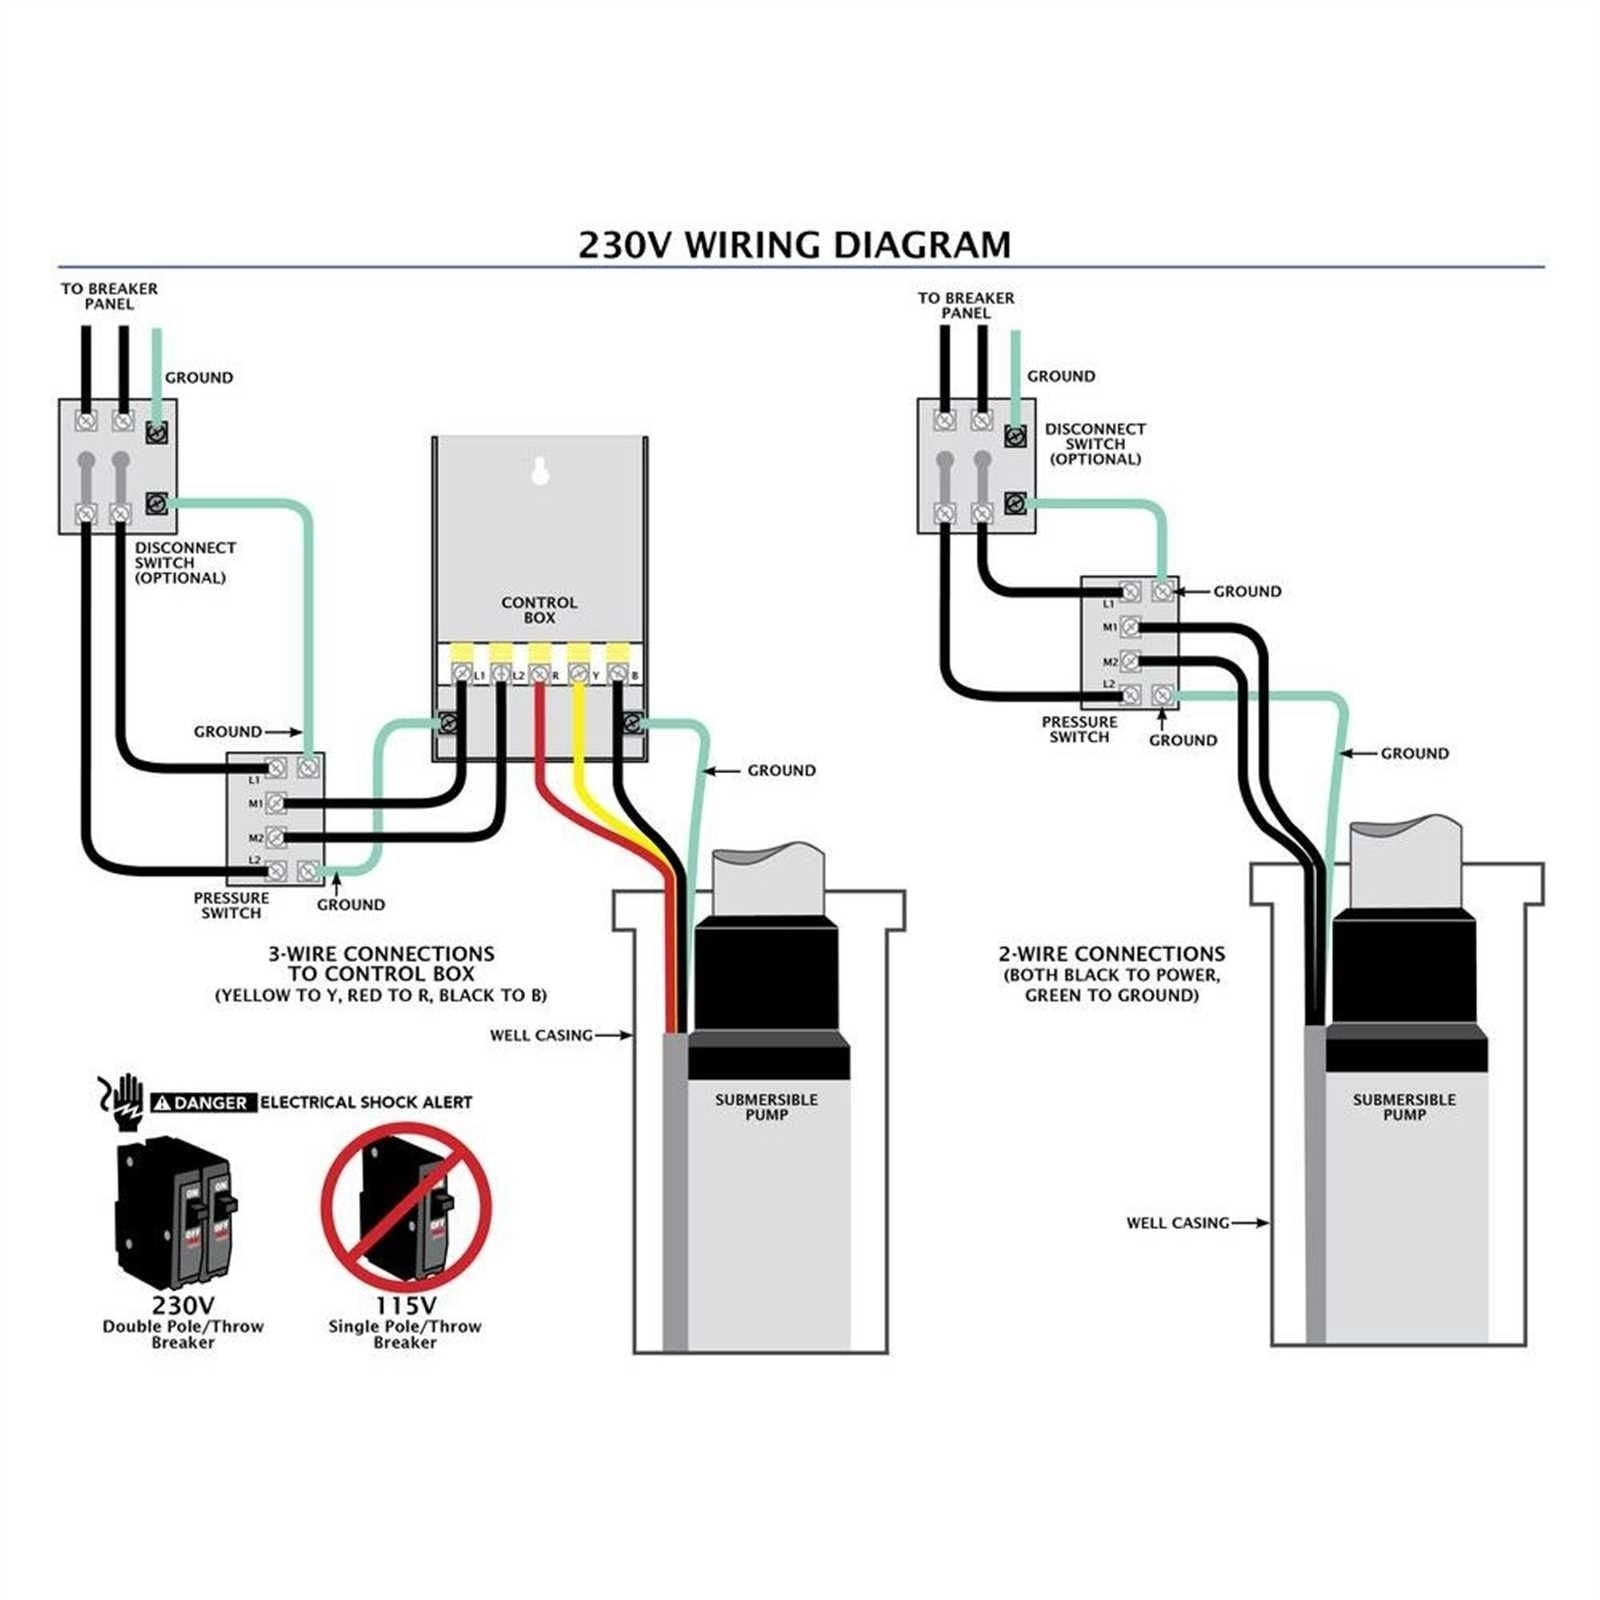 Pump Pressure Control Switch Wiring Diagram | Manual E-Books - Water Pump Pressure Switch Wiring Diagram